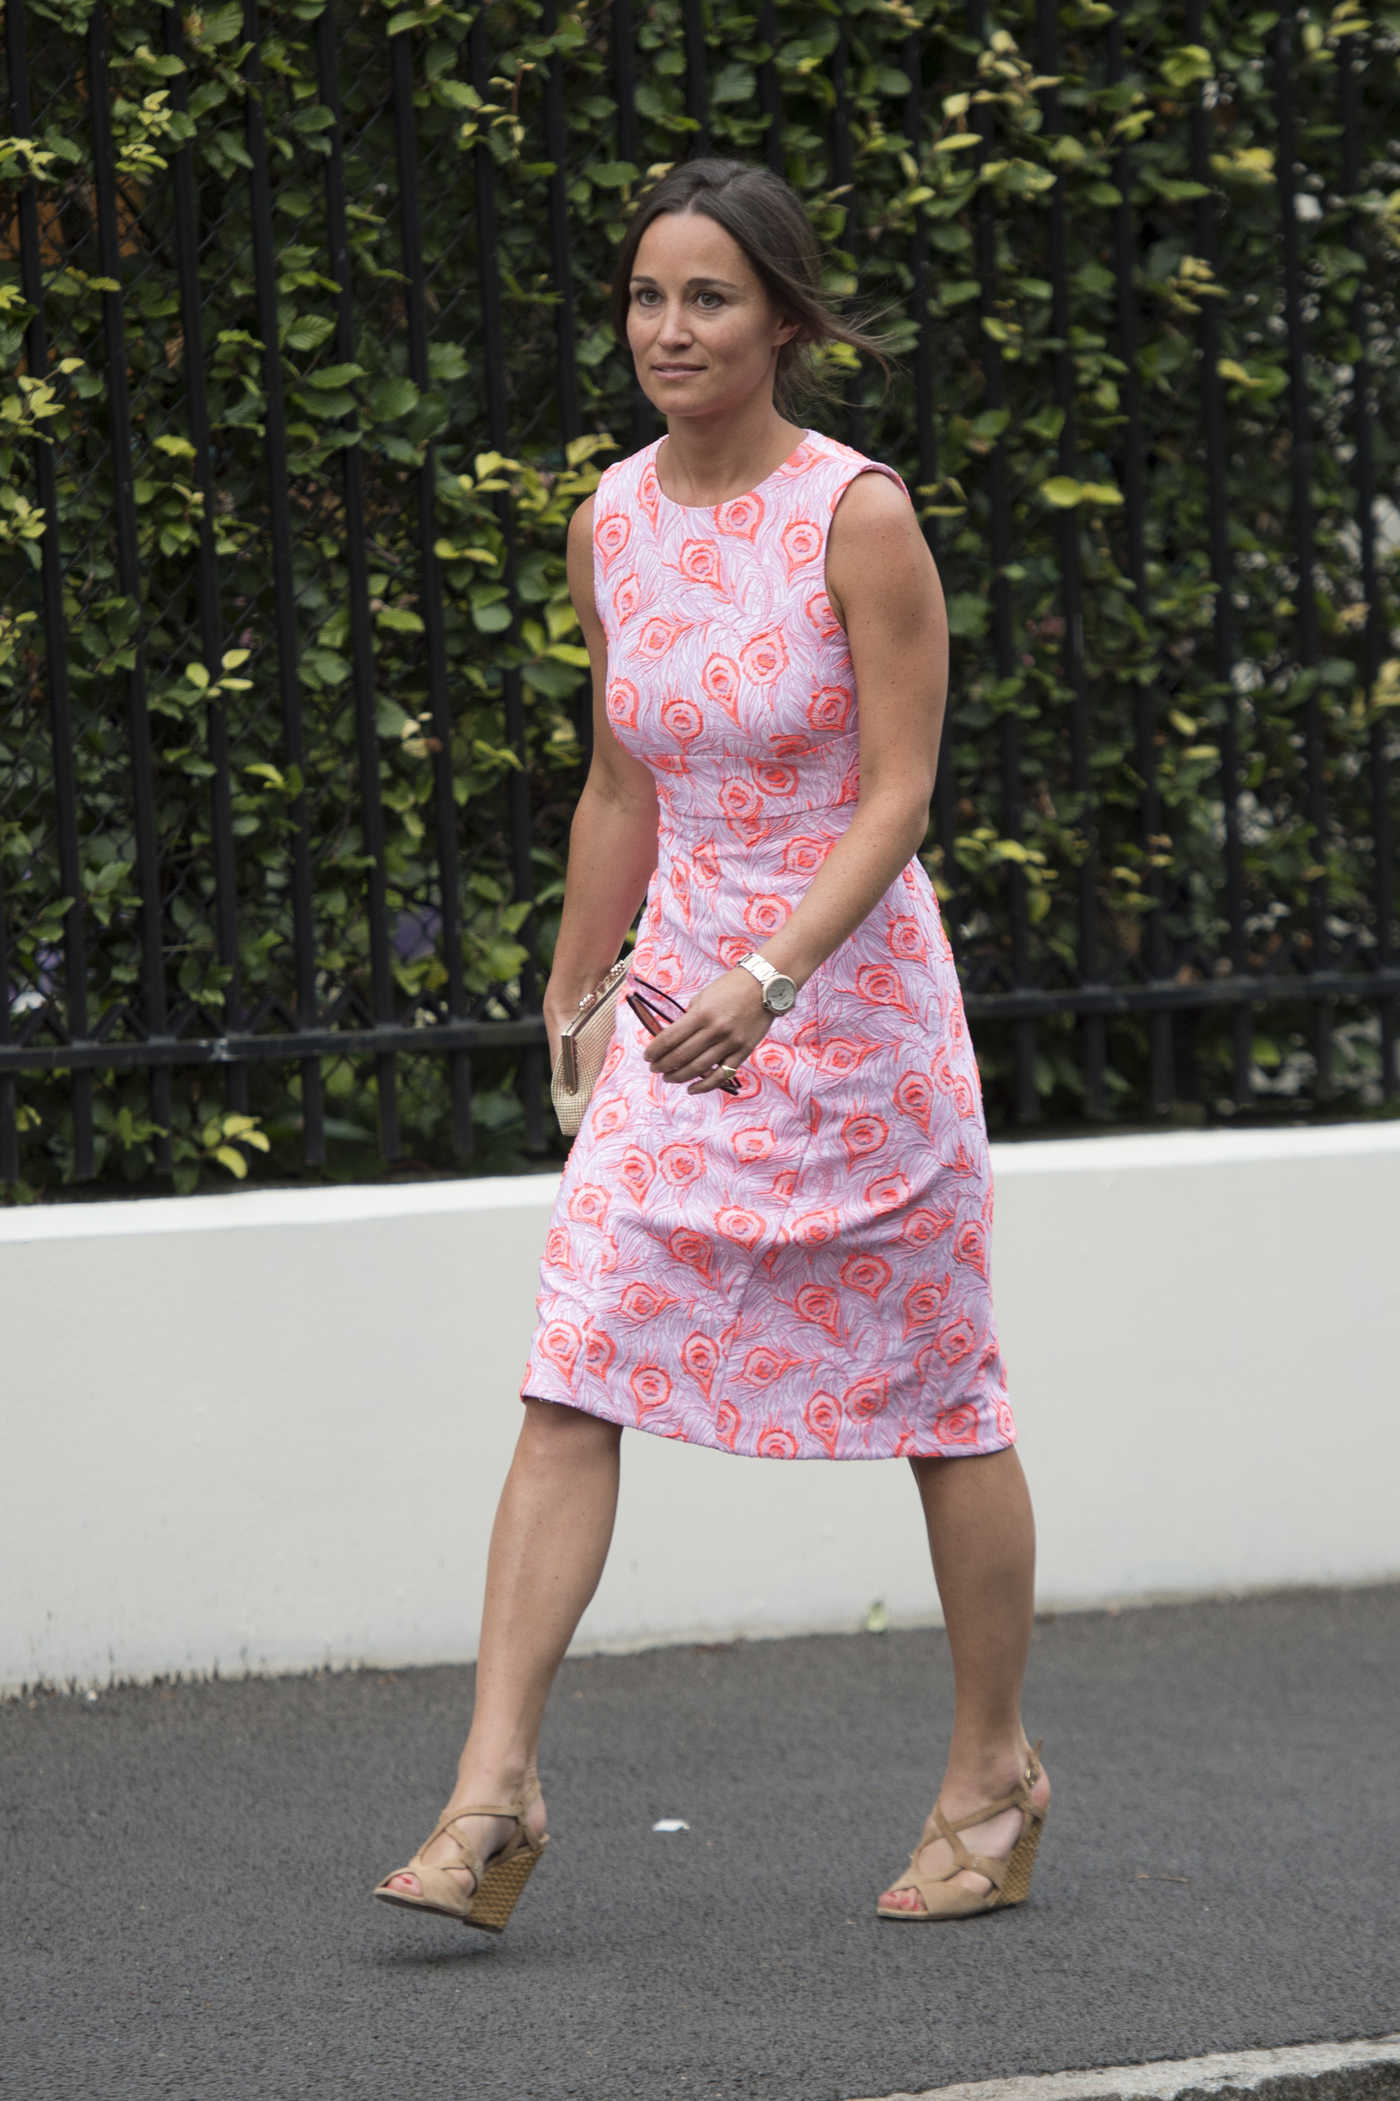 Pippa Middleton at the Tennis Championships in Wimbledon 07/06/2016